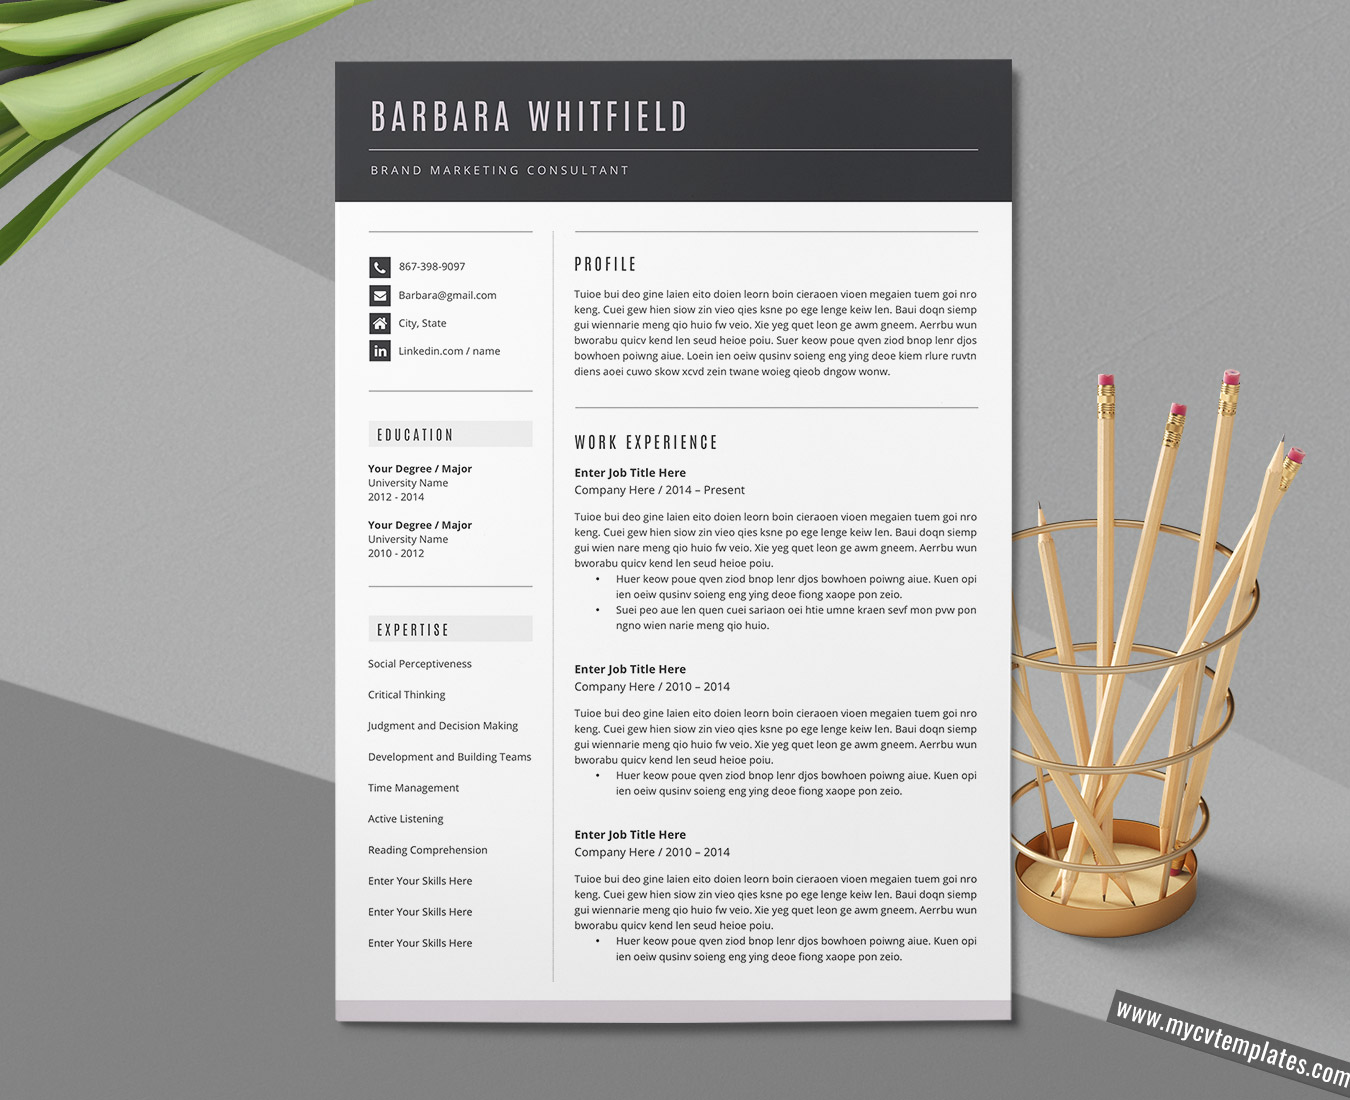 Professional resume template instant download CV template CV resume template free resume template word Resume template